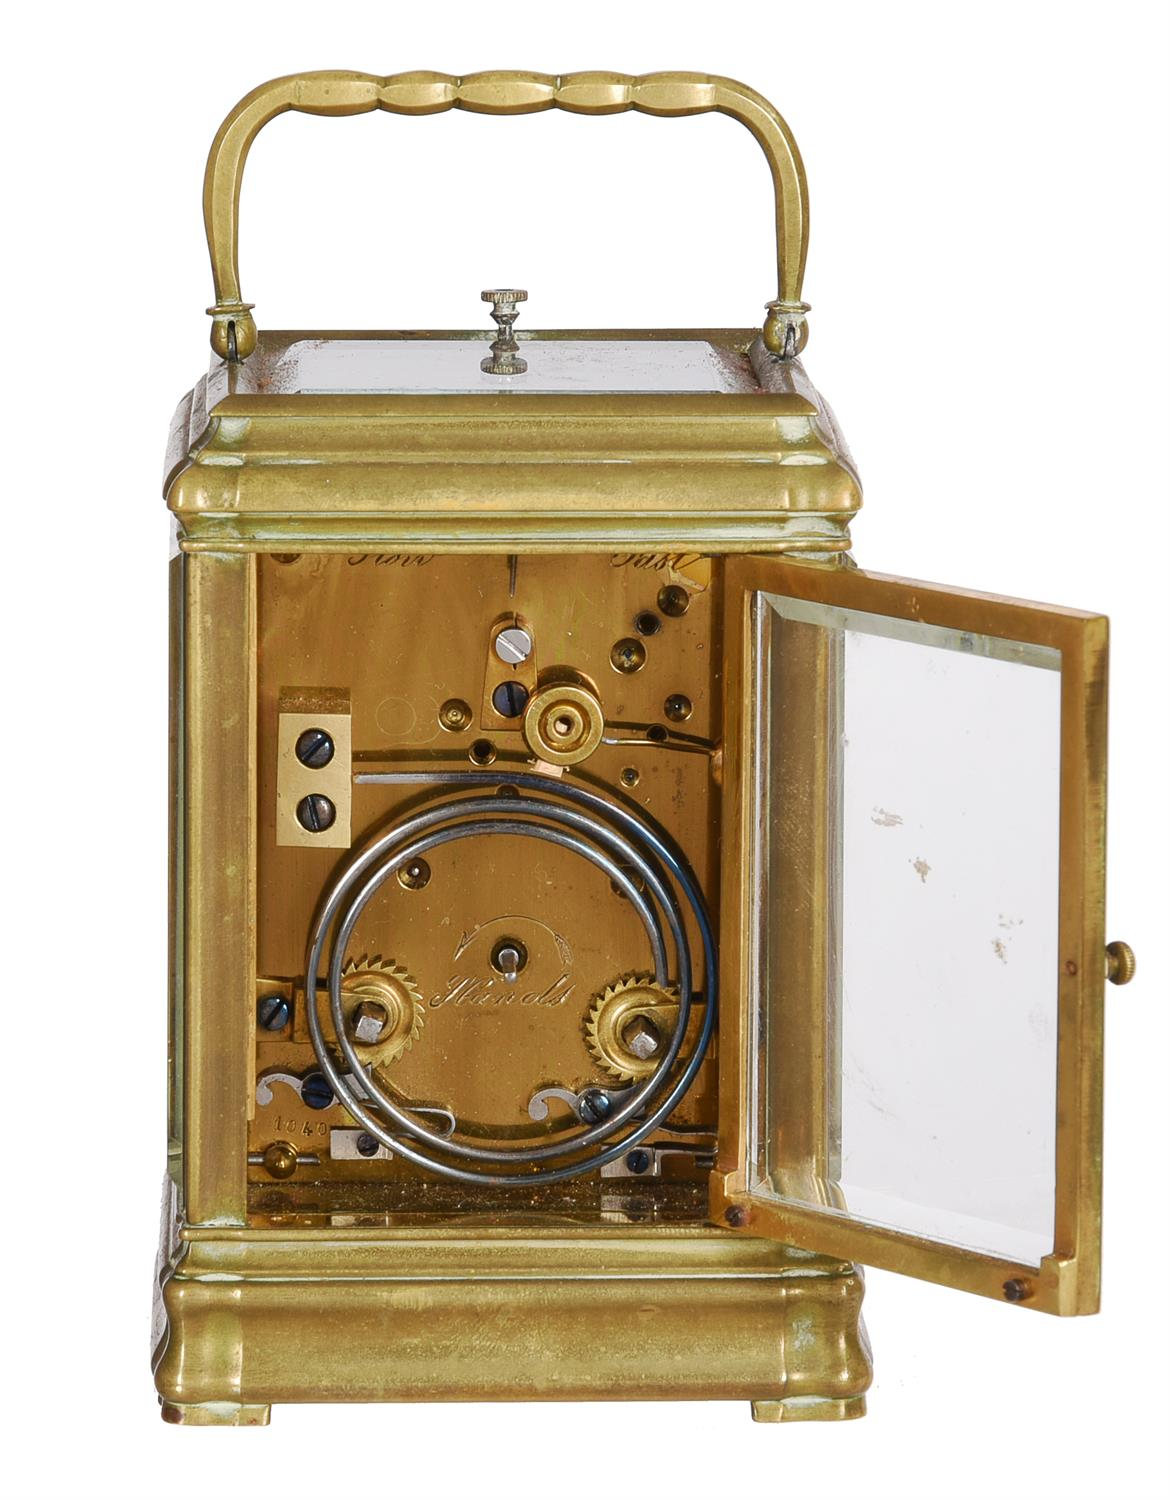 A French brass mid-sized gorge carriage clock with push-button repeat - Image 3 of 3